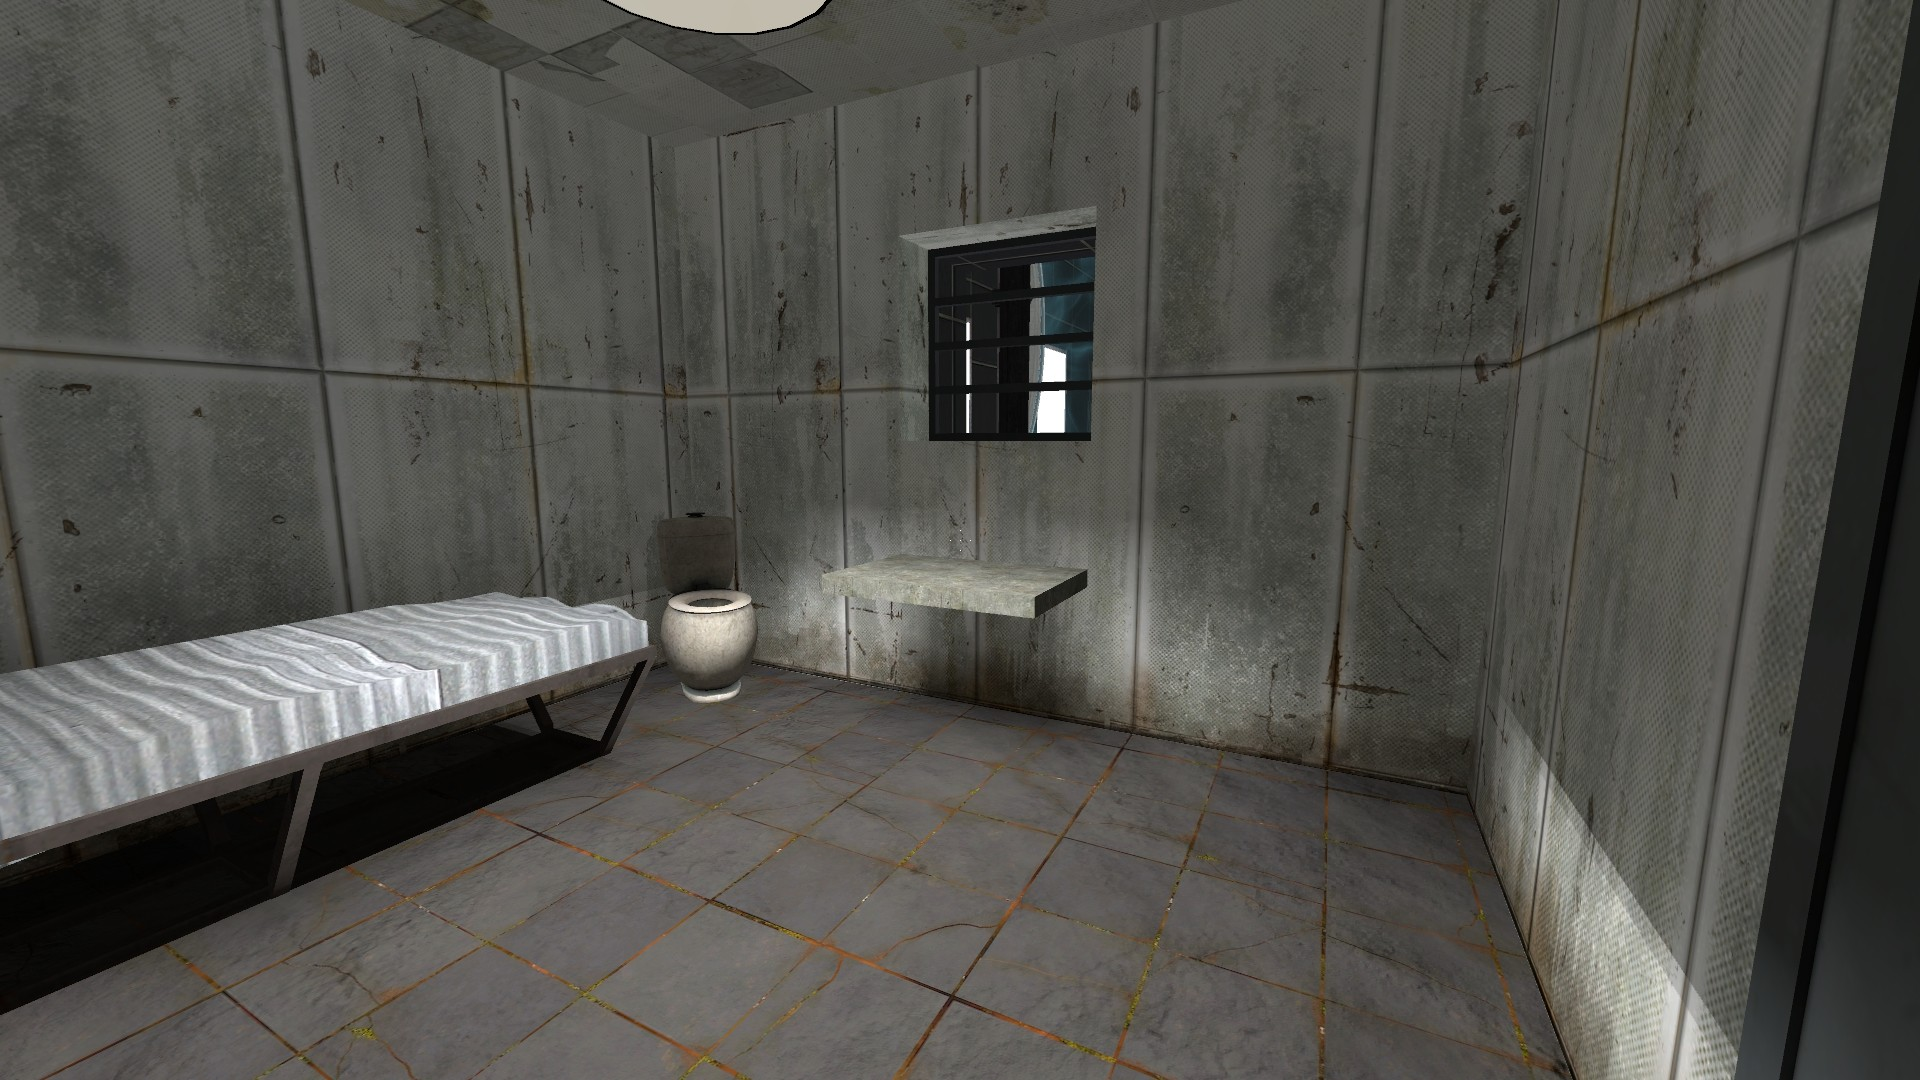 how to build a jail cell